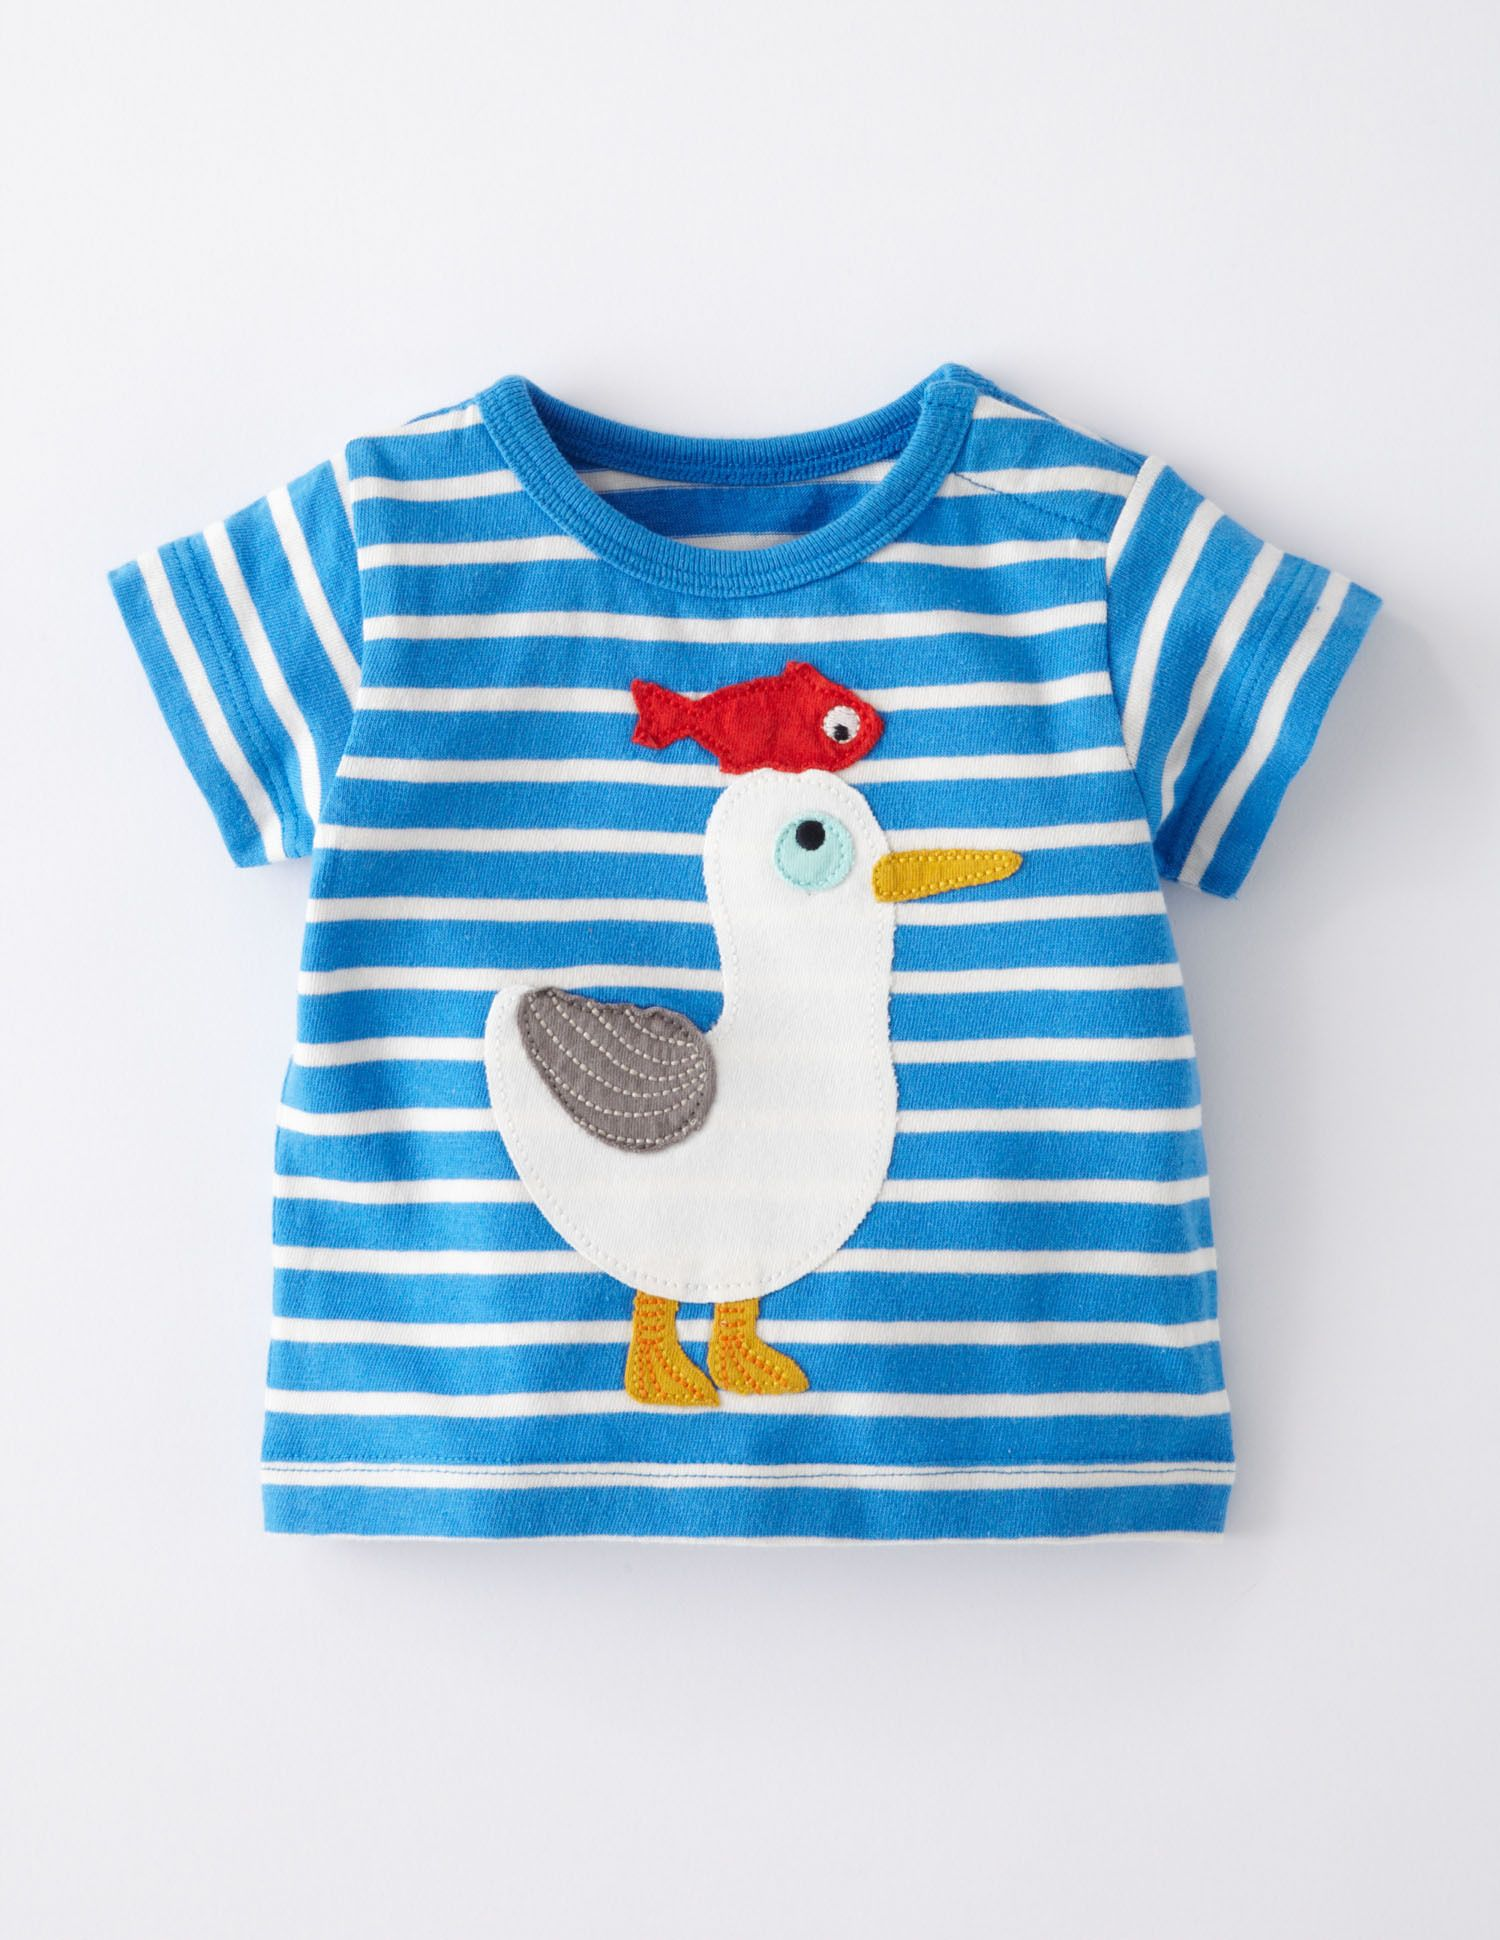 Klamotten Nähen Gull P Bebe Sewing For Kids Kids Prints Und Kids Outfits